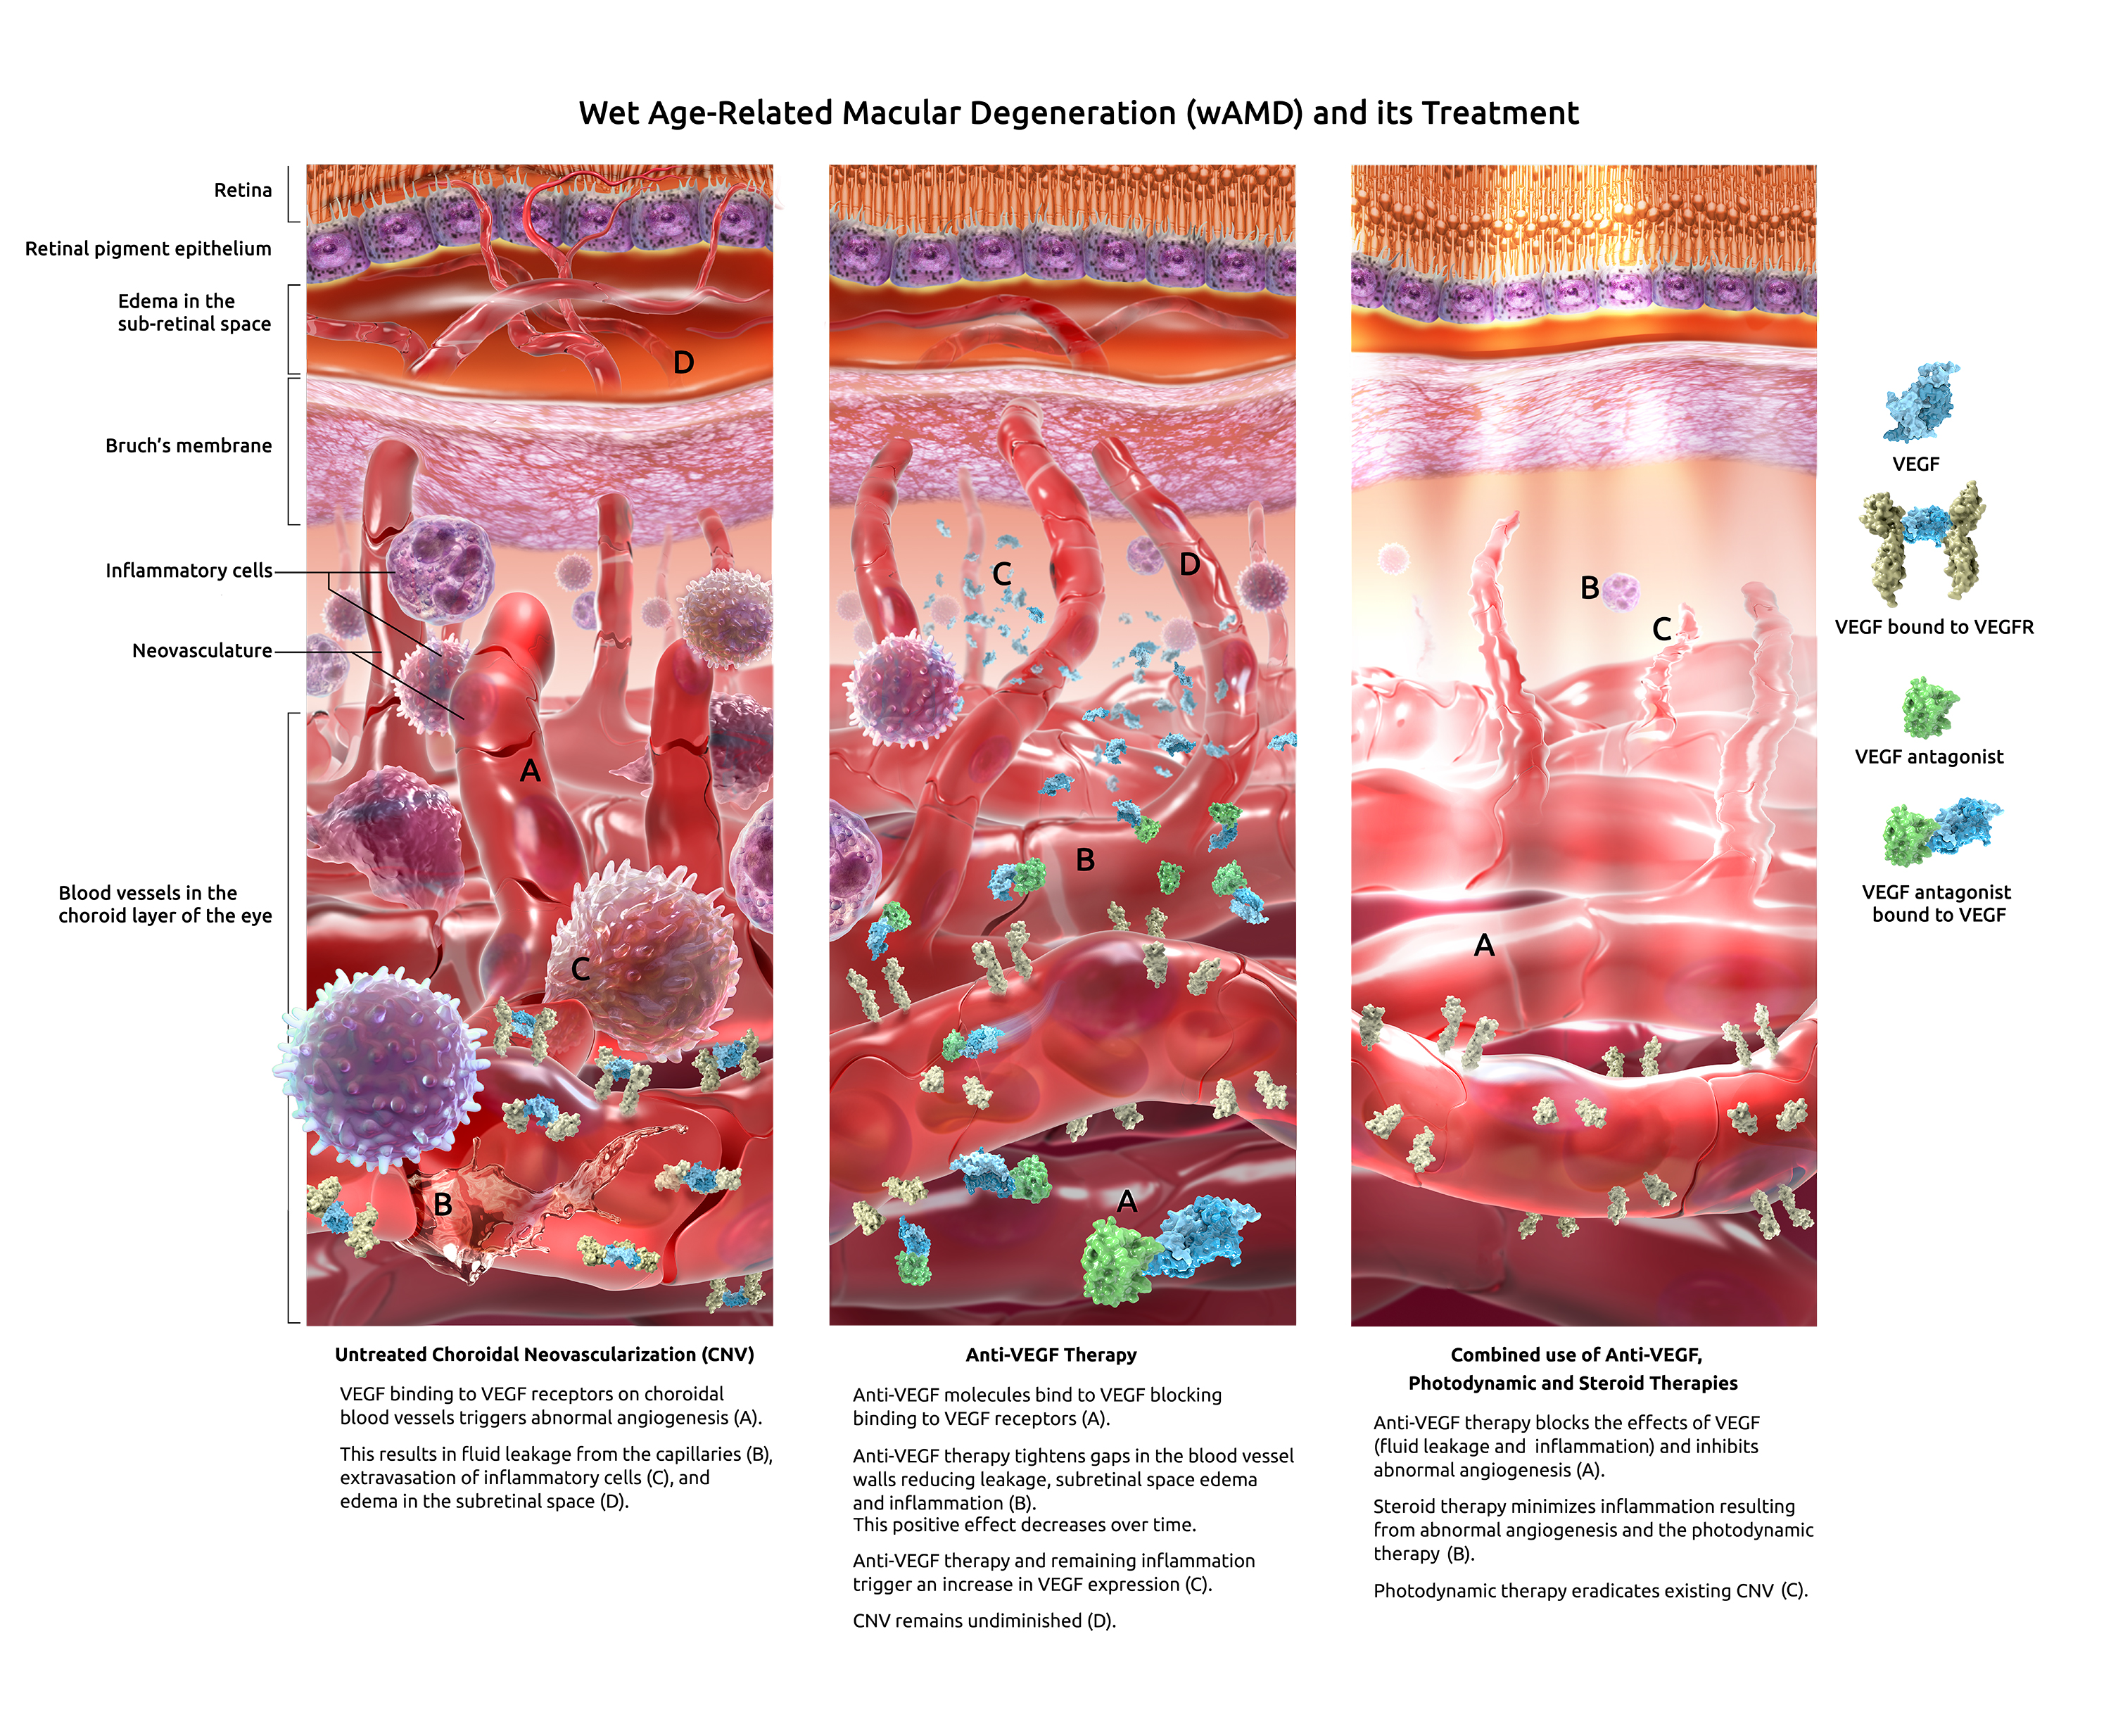 Triptych Illustration on Wet Age-Related Macular Degeneration and